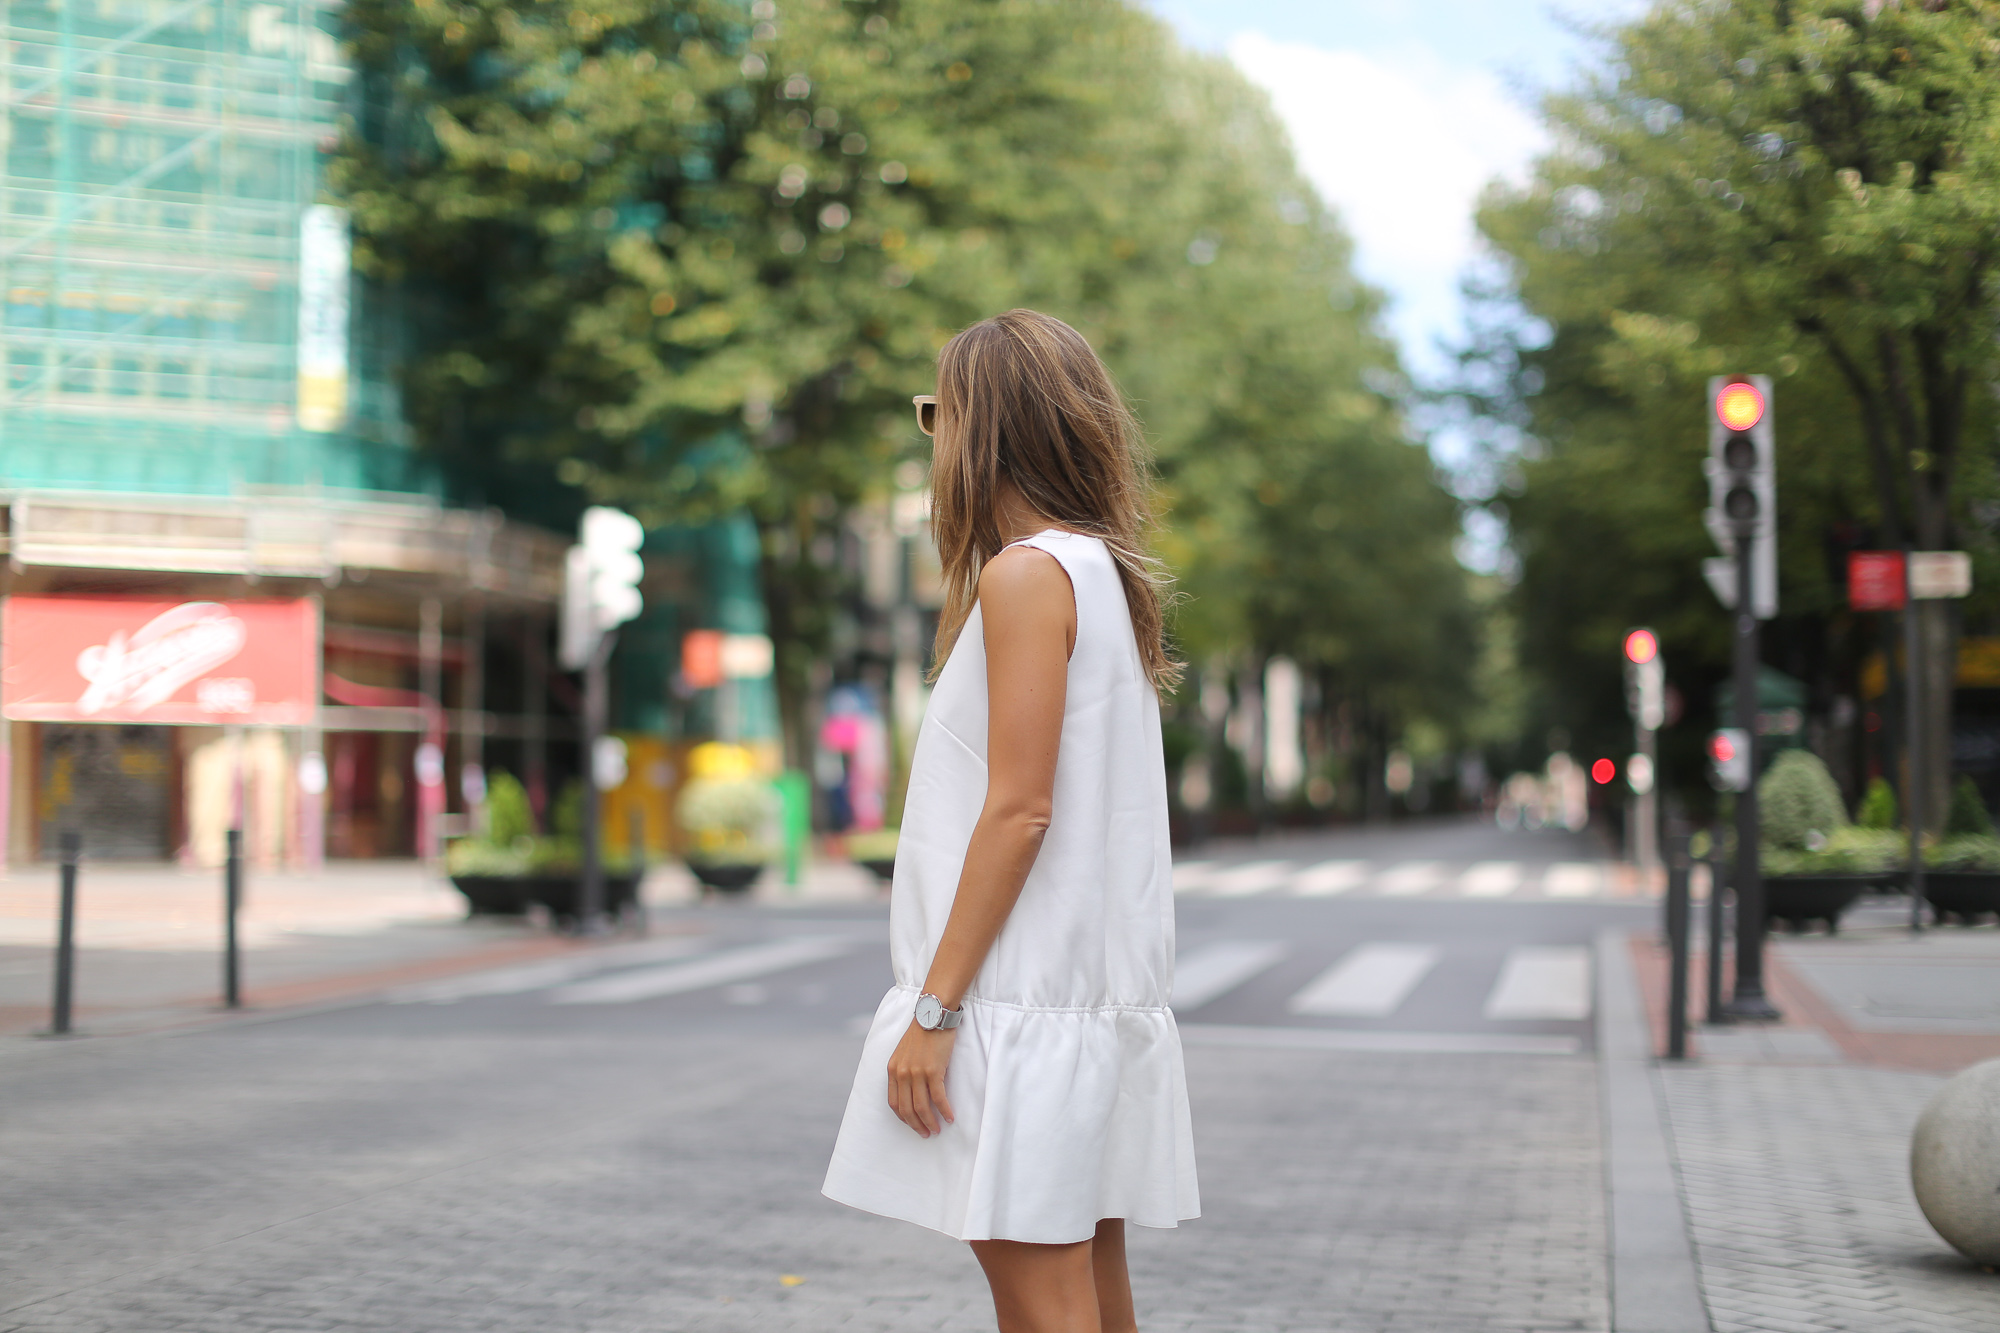 Clochet_h&m_trend_white_neoprene_dress_-1-8